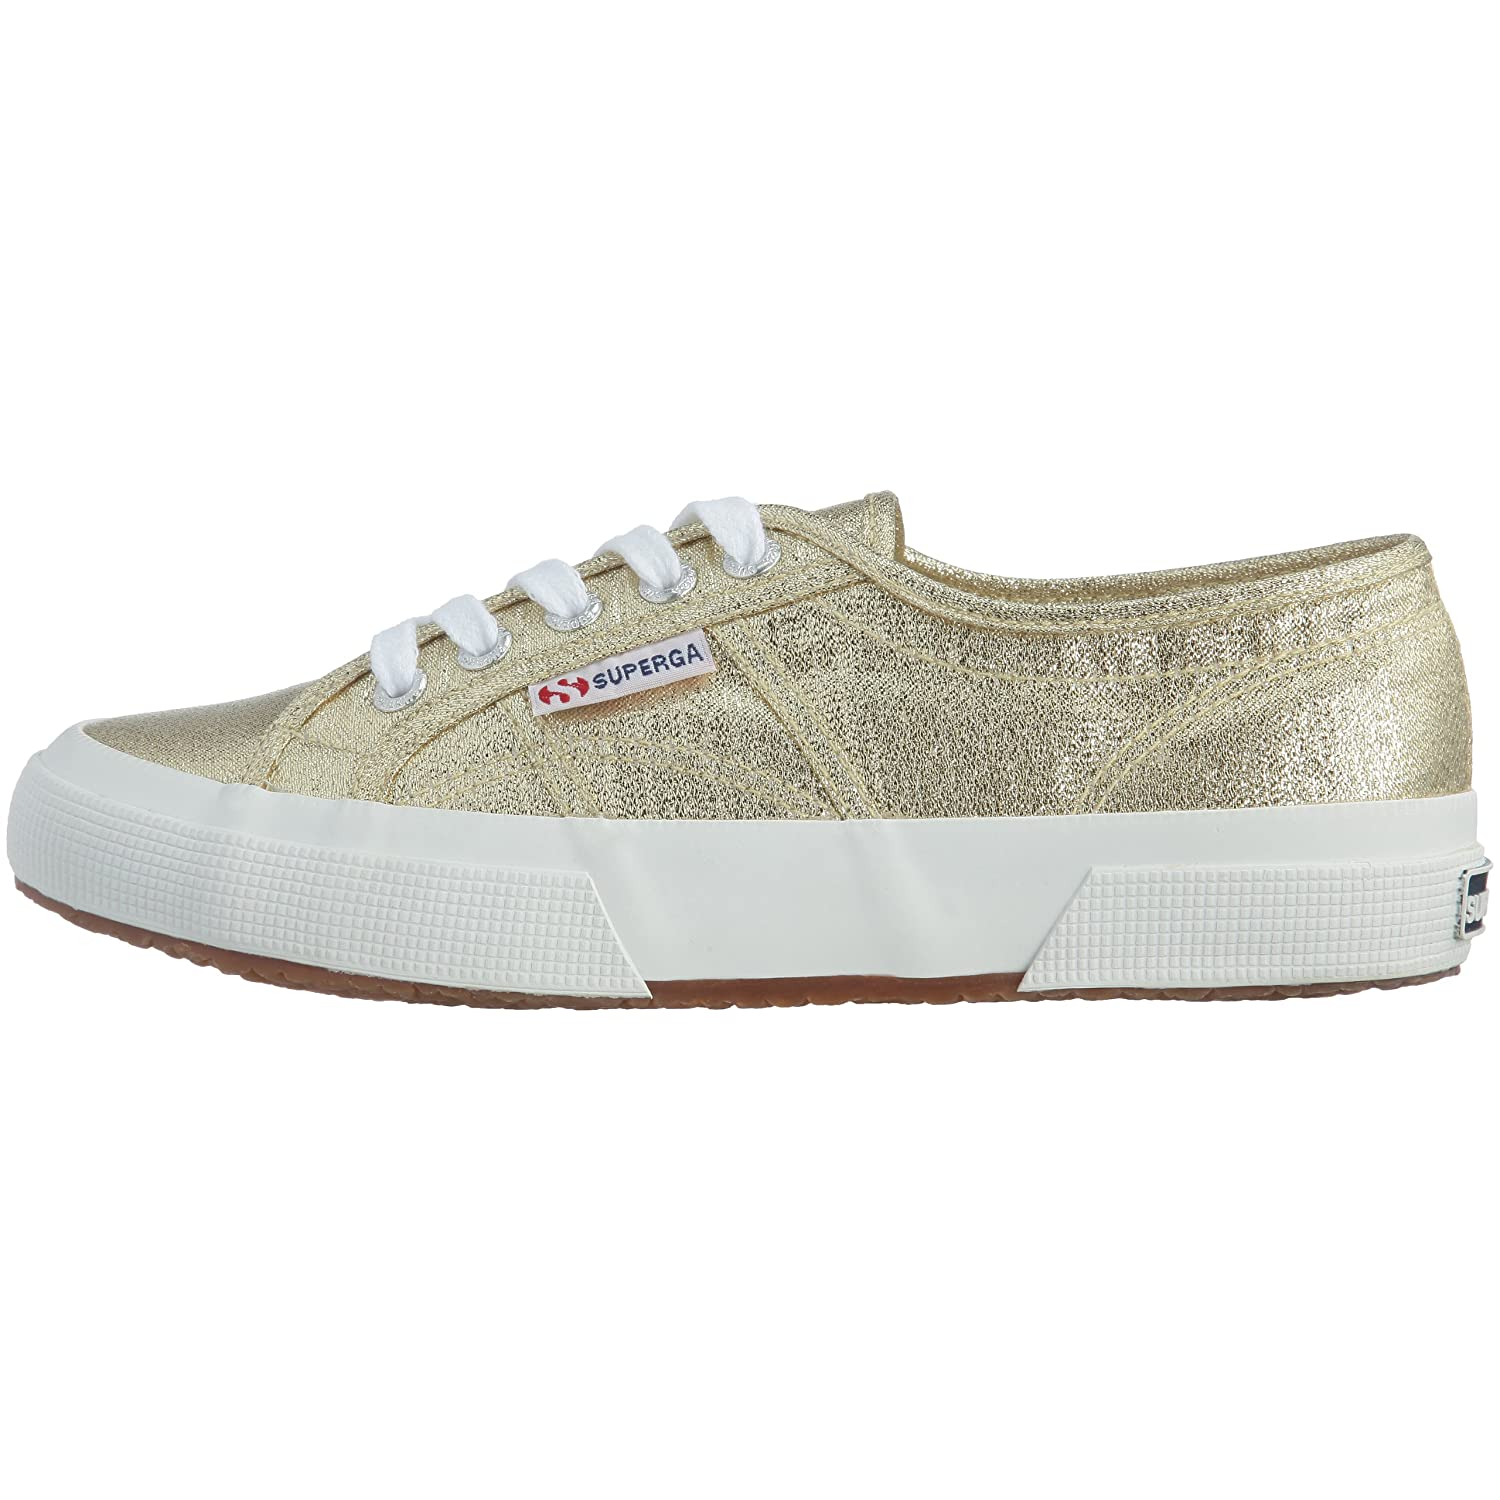 Amazon.com | Superga 2750 Lamew, Womens Low-Top Sneakers, Gold (174), 5 UK (38 EU) | Fashion Sneakers